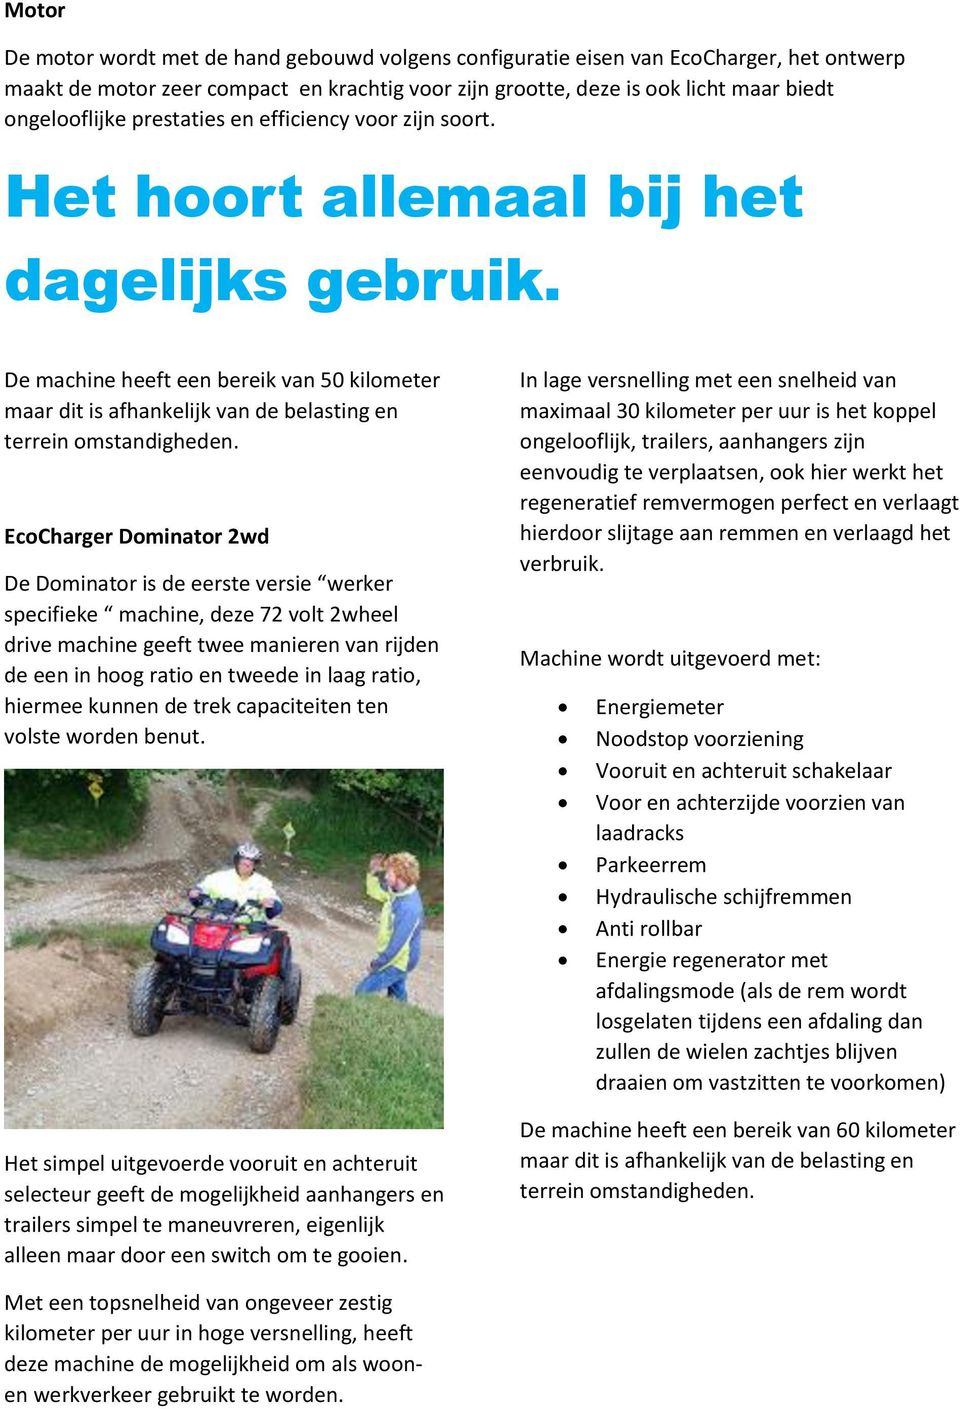 EcoCharger Dominator 2wd De Dominator is de eerste versie werker specifieke machine, deze 72 volt 2wheel drive machine geeft twee manieren van rijden de een in hoog ratio en tweede in laag ratio,